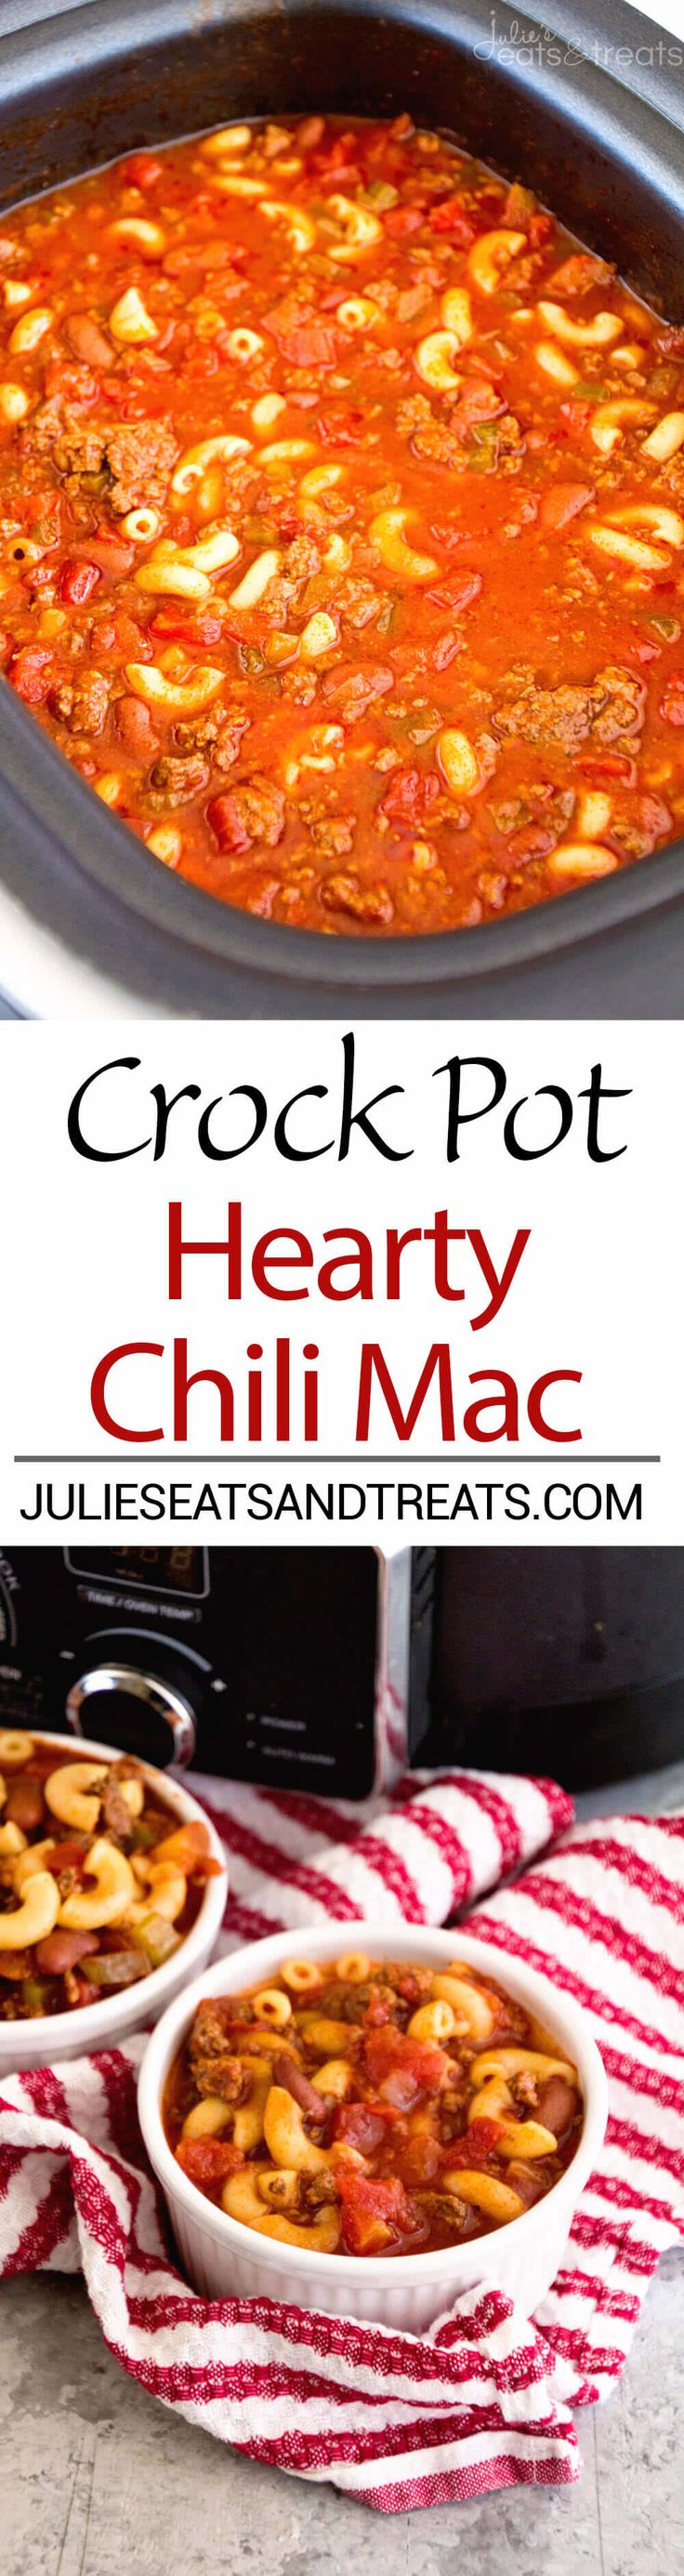 Crock Pot Hearty Chili Mac Recipe ~ Delicious Chili Slow Cooked All Day Long and Then Finished Off with Pasta! Hearty, Comforting Meal for Dinner! ~ http://www.julieseatsandtreats.com